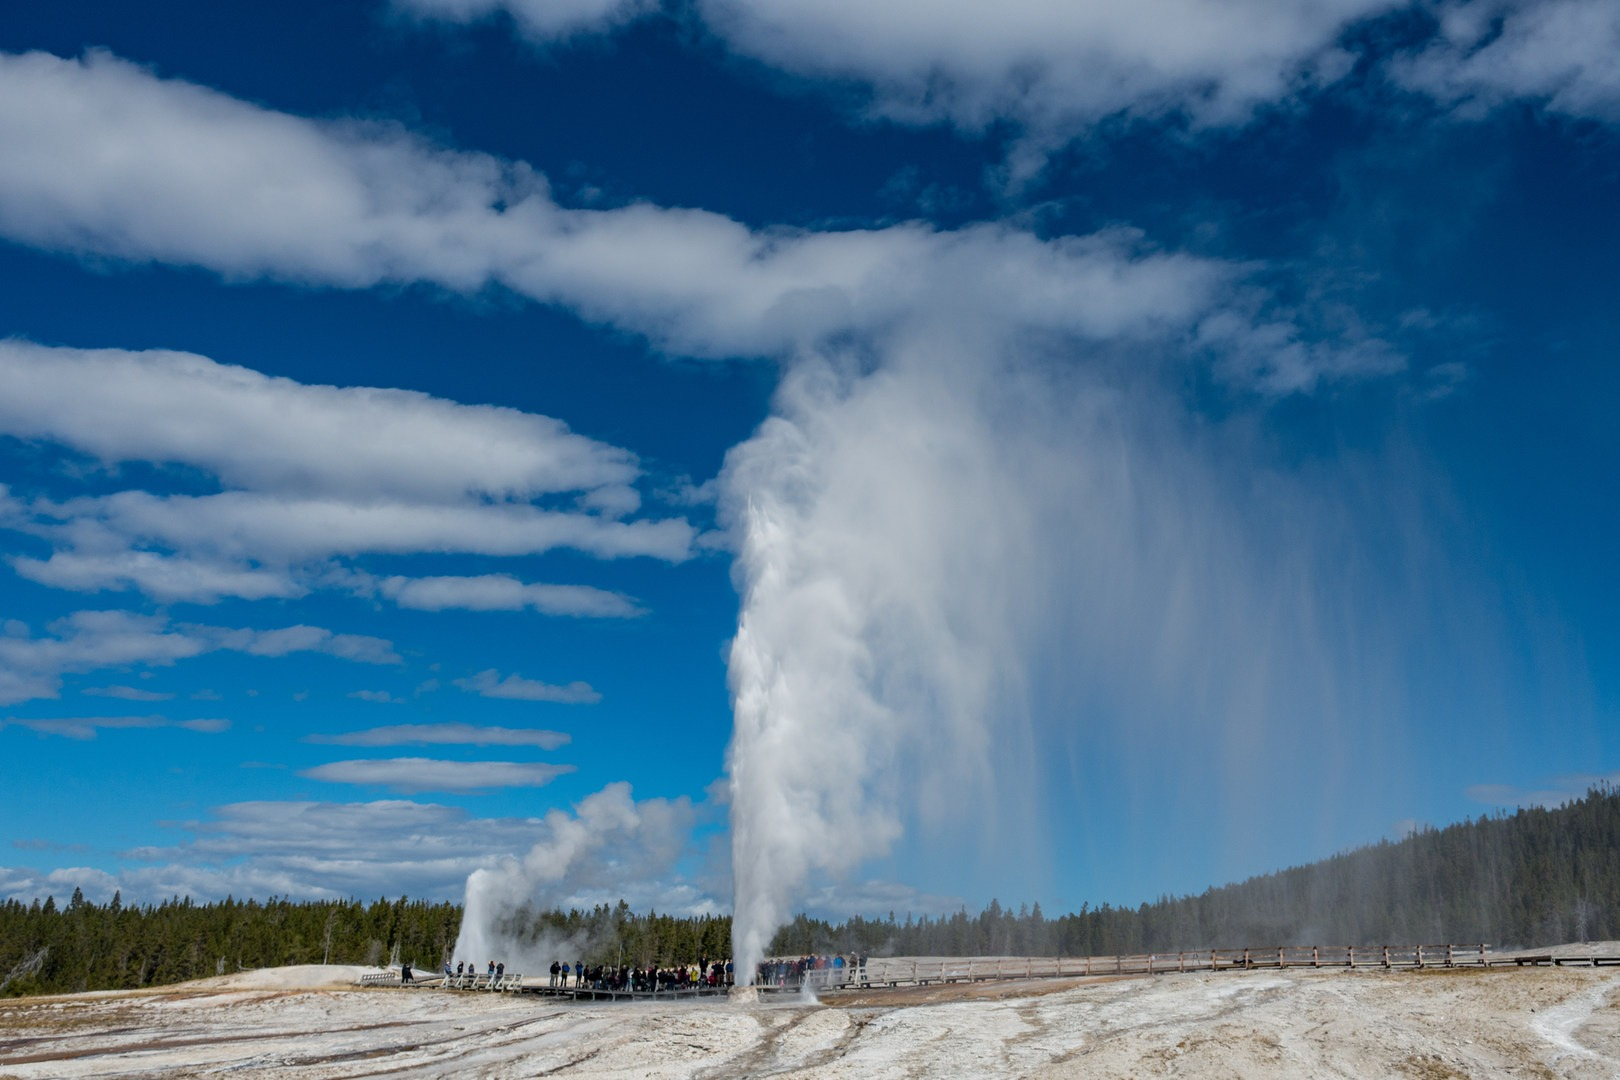 guide to the geysers + hydrothermal features of yellowstone national